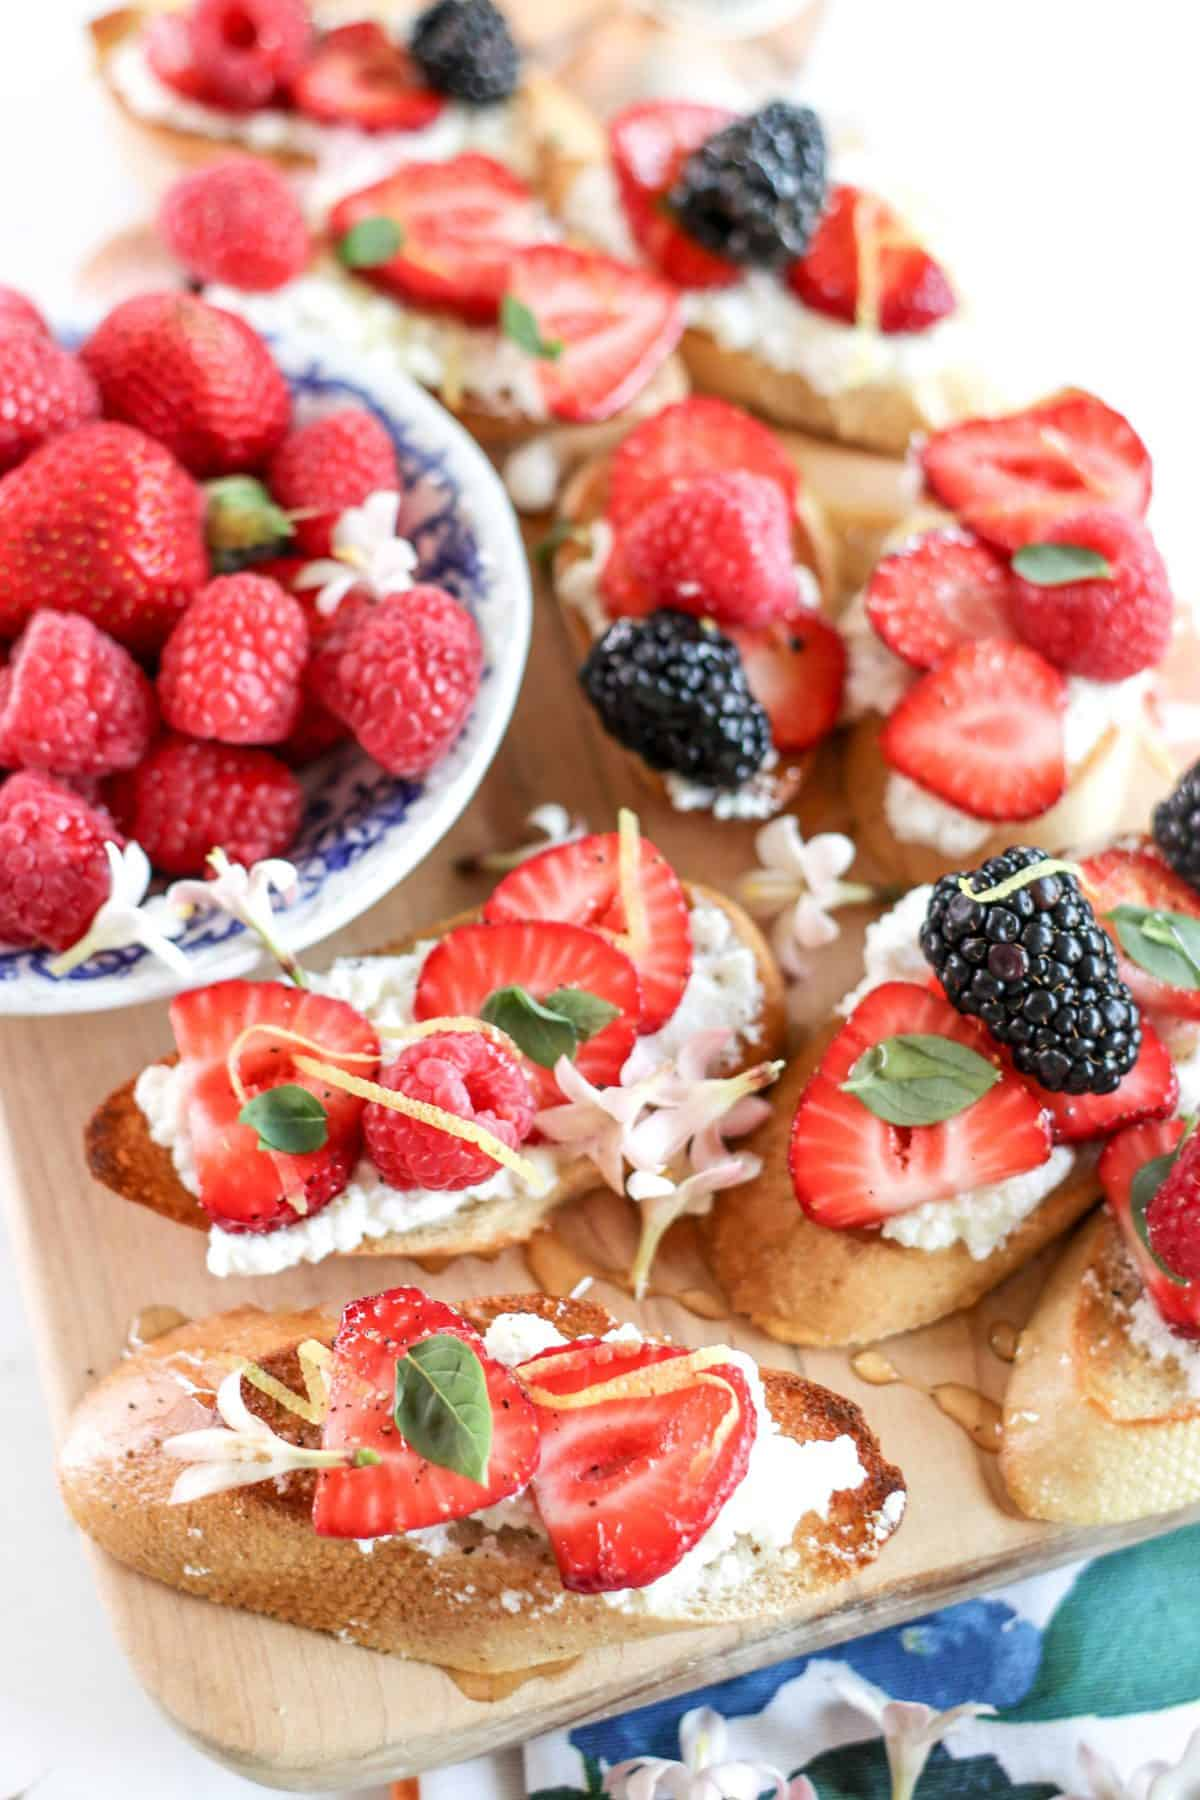 berry crostini with strawberries, blueberries and blackberries